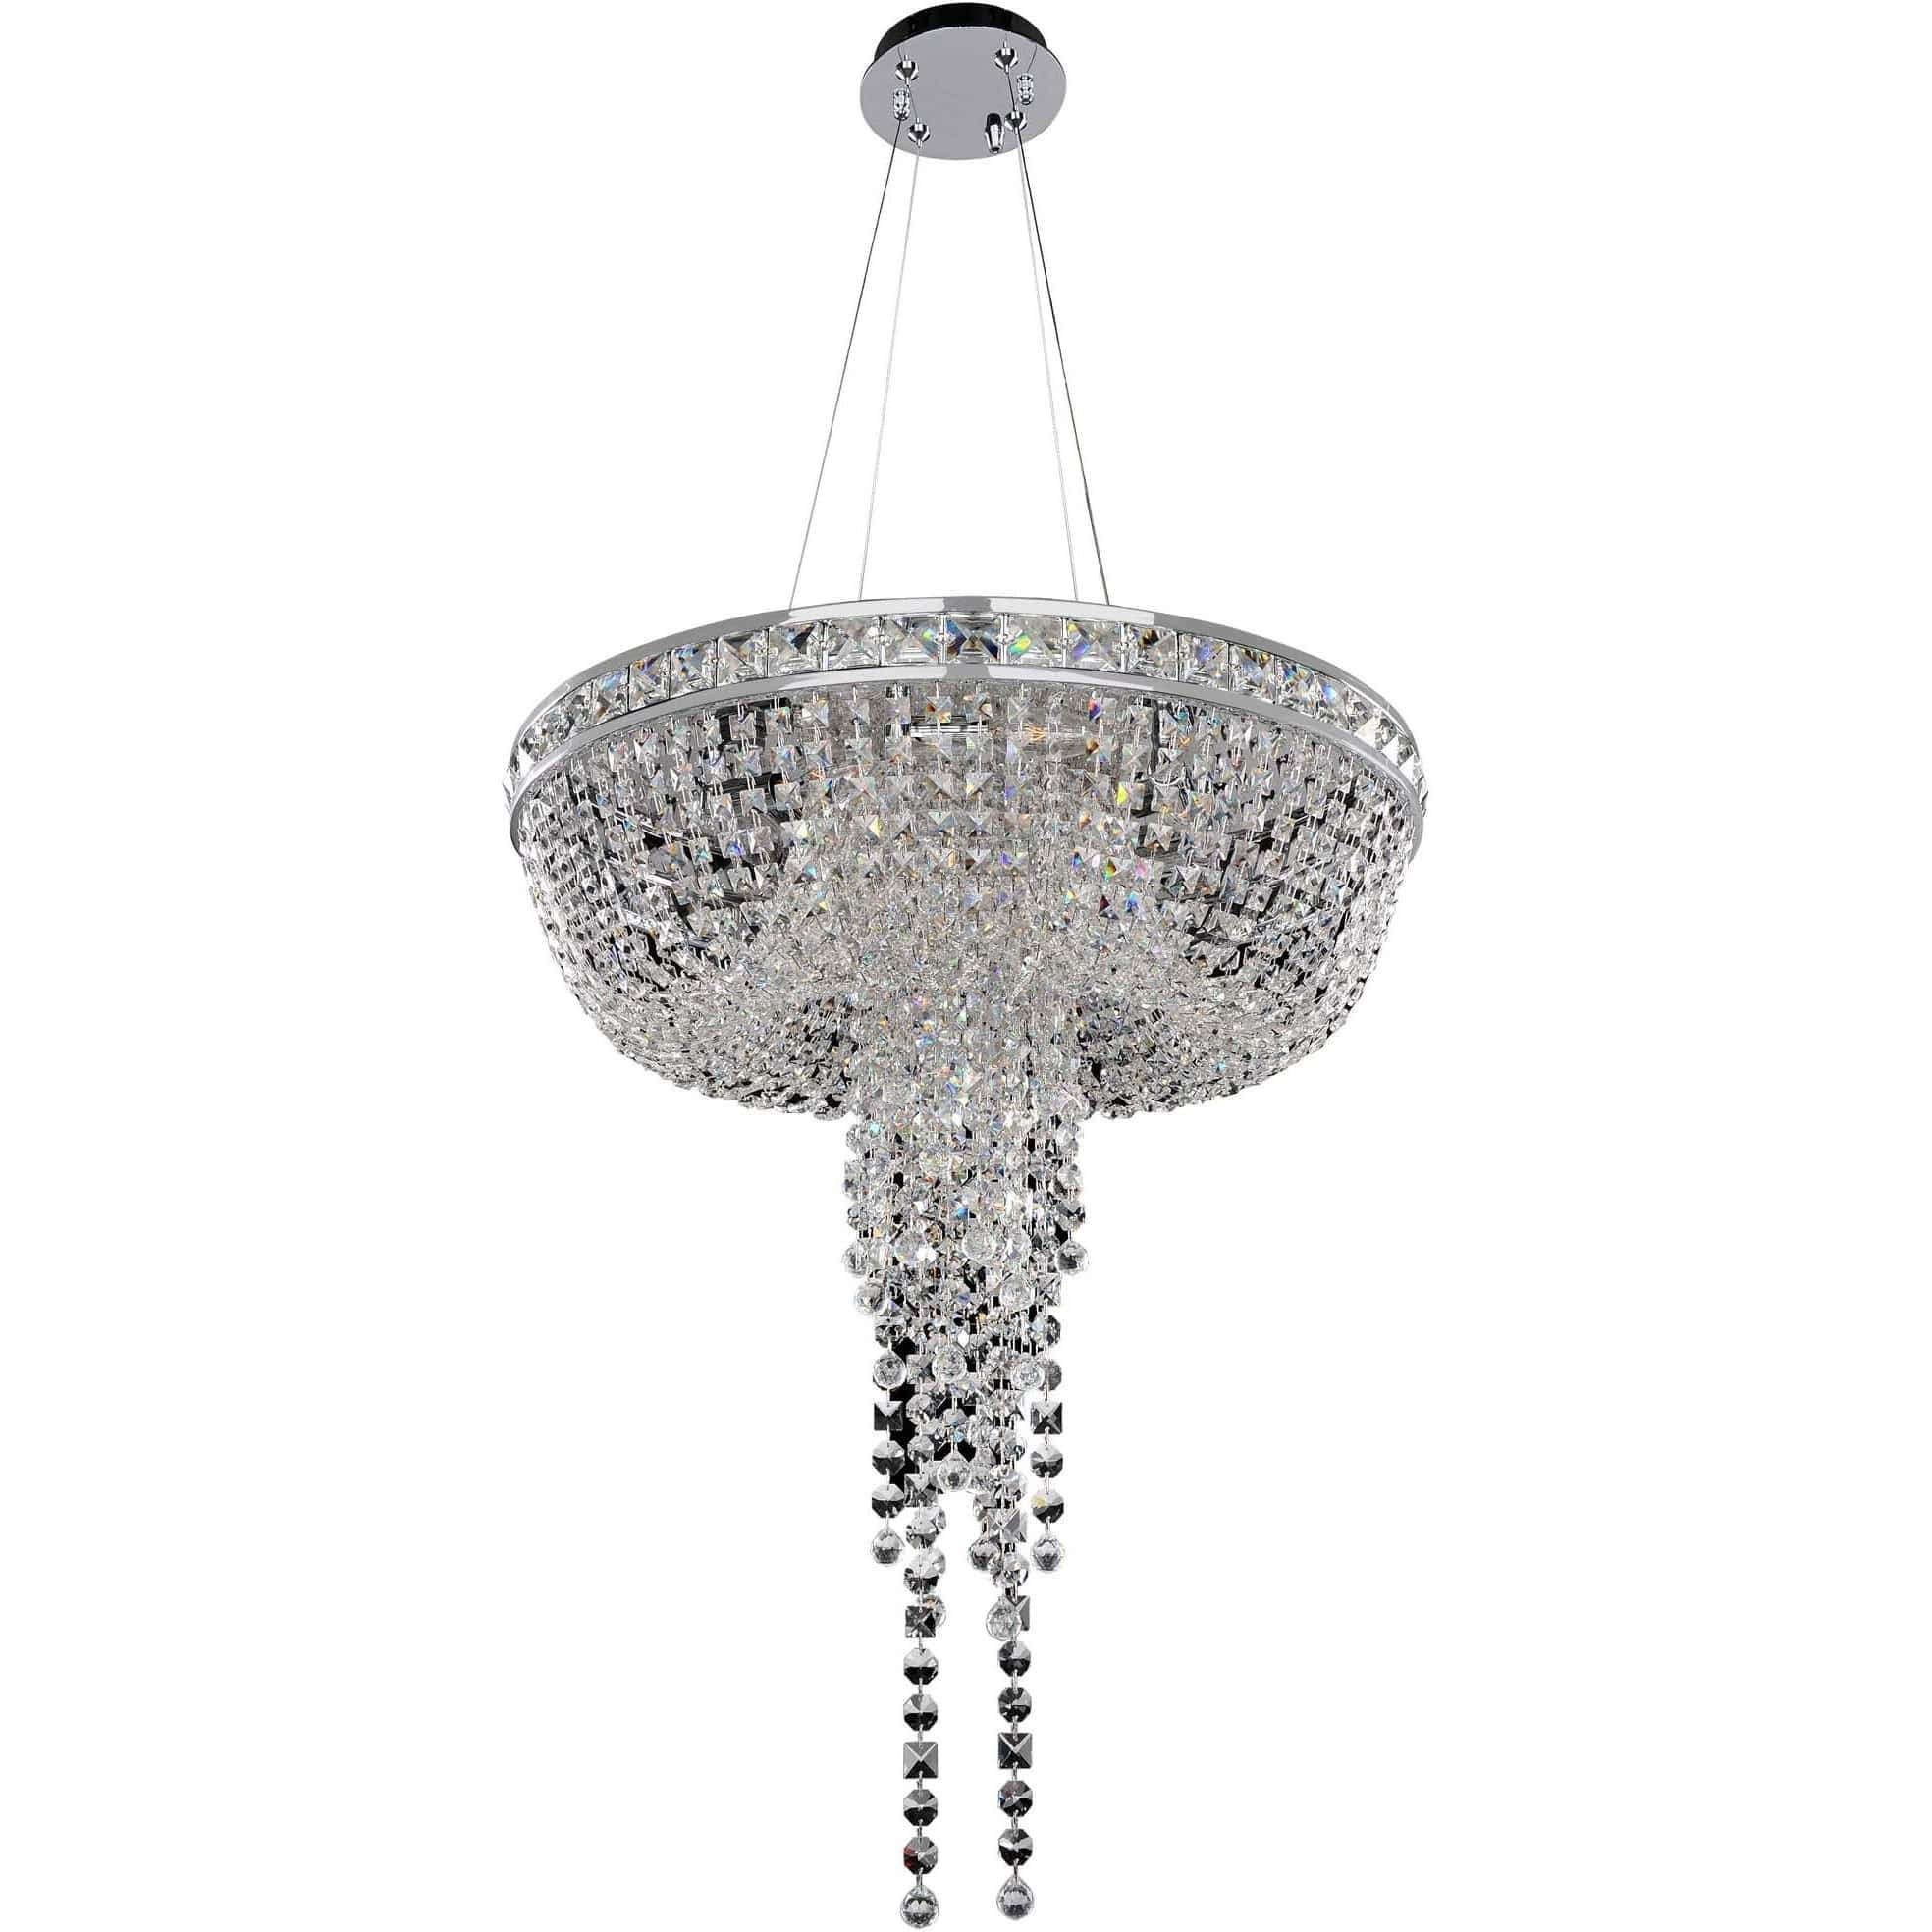 Allegri by Kalco Lighting Pendants Chrome / Firenze Clear Cascata 24 Inch Convertible Pendant - Flush Mount From Allegri by Kalco Lighting 027351